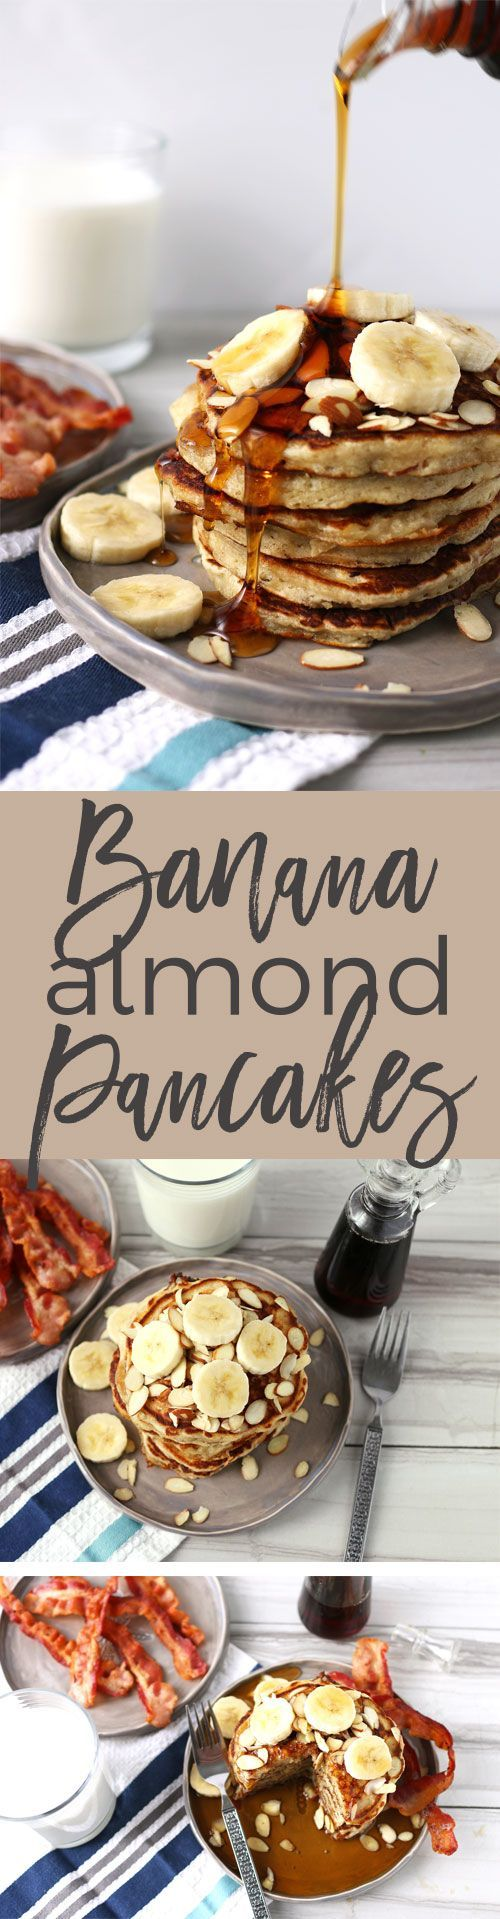 These banana almond pancakes are perfect for weekend breakfasts! Forget about banana bread - use your overripe bananas to make this easy pancake recipe. |